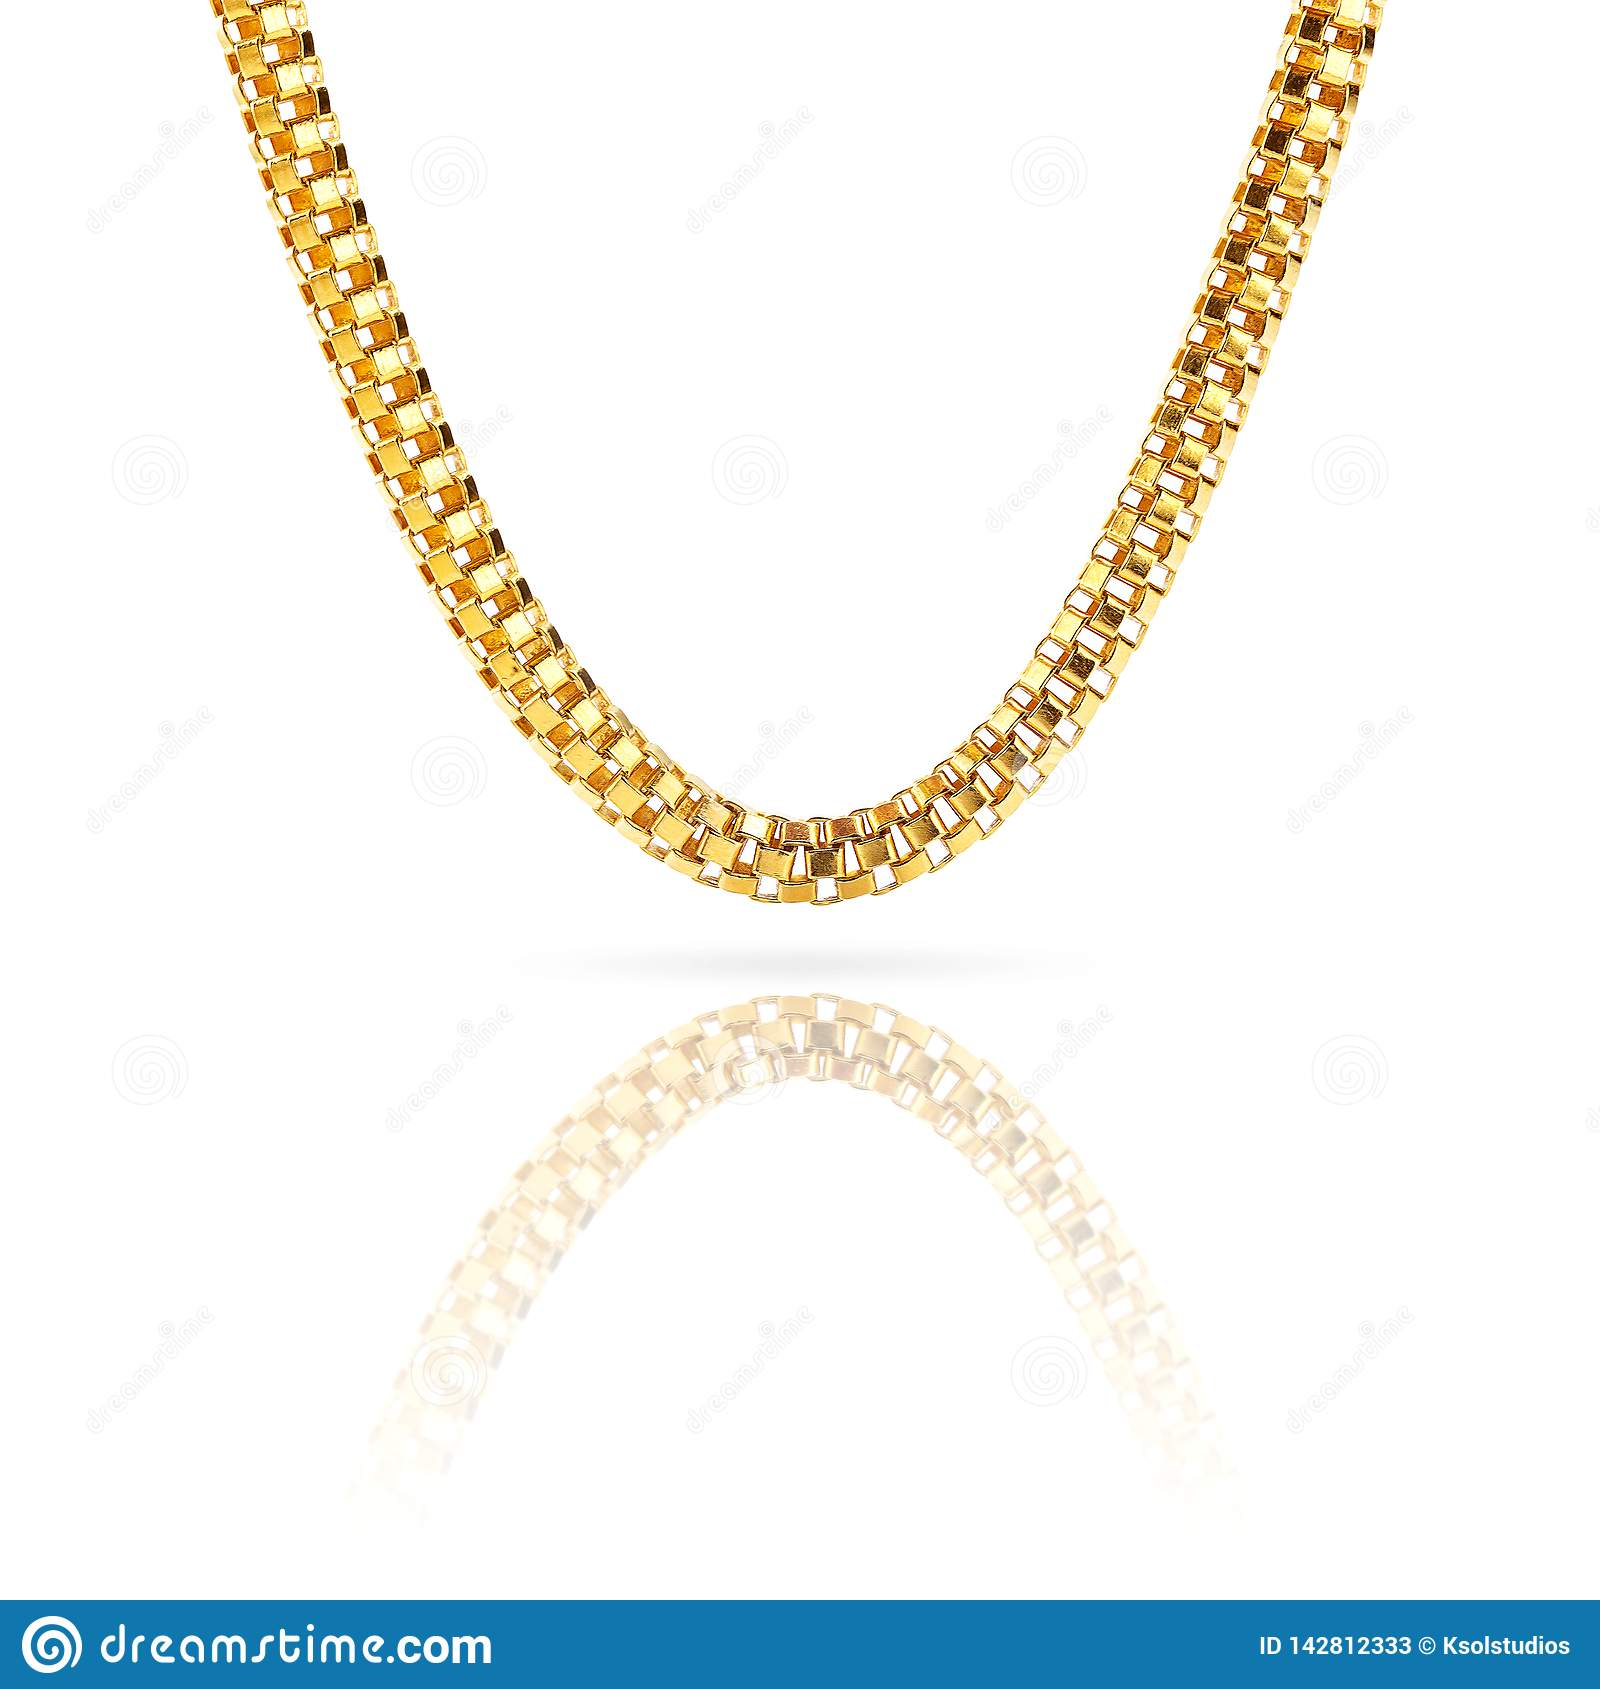 Pure solid gold chain necklace bracelet isolated on white background